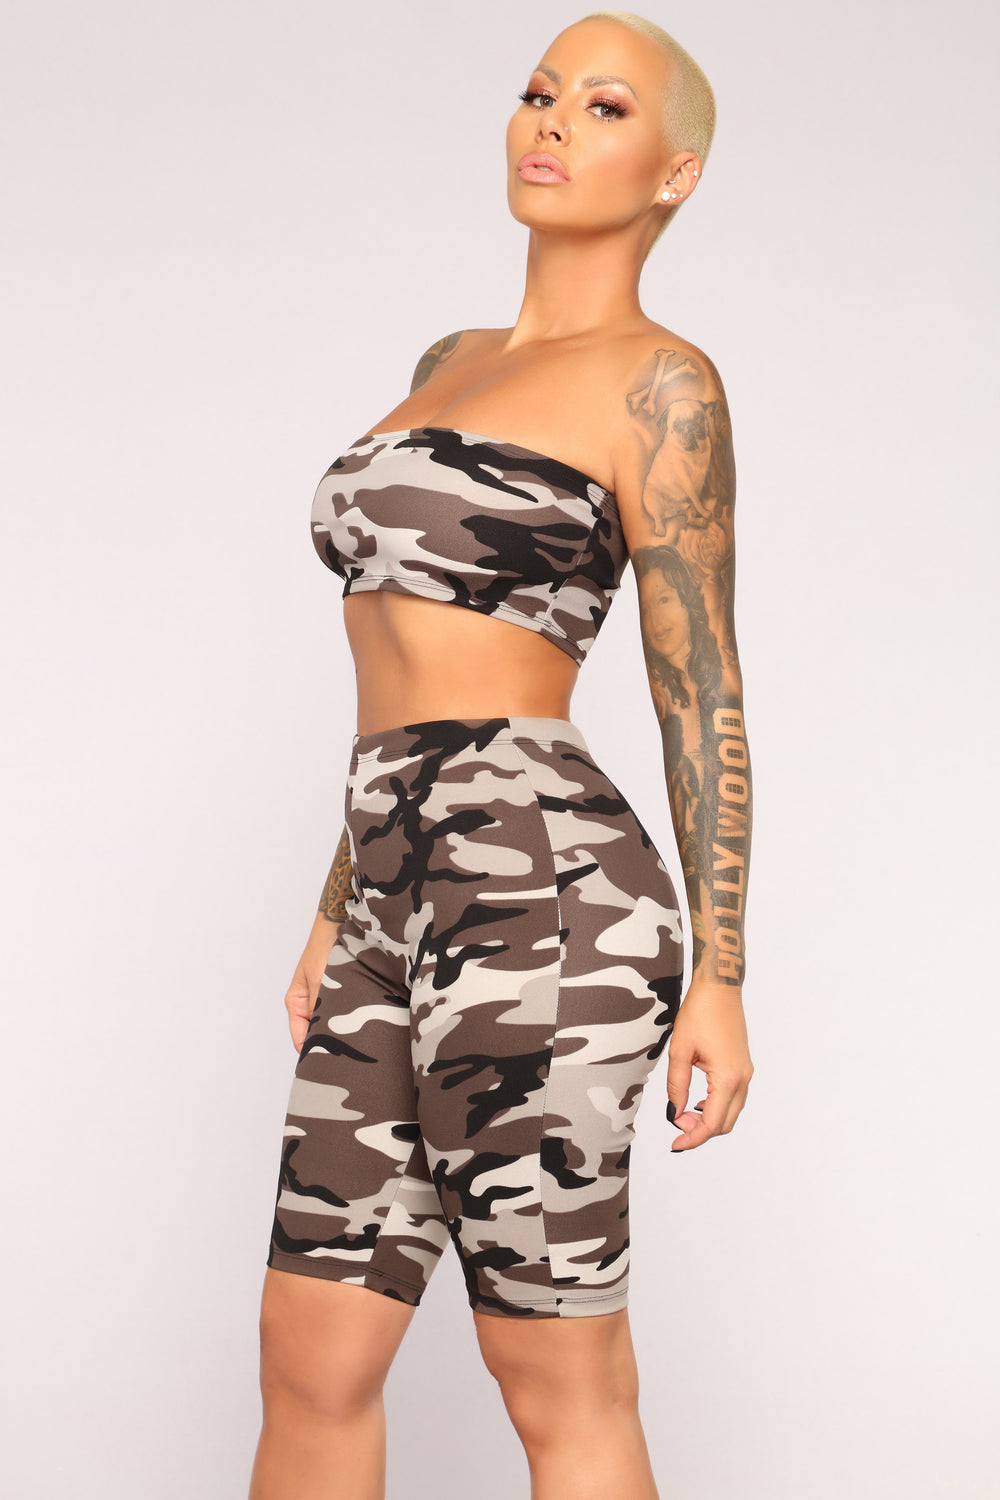 Hidden Motives Crop Top - Grey